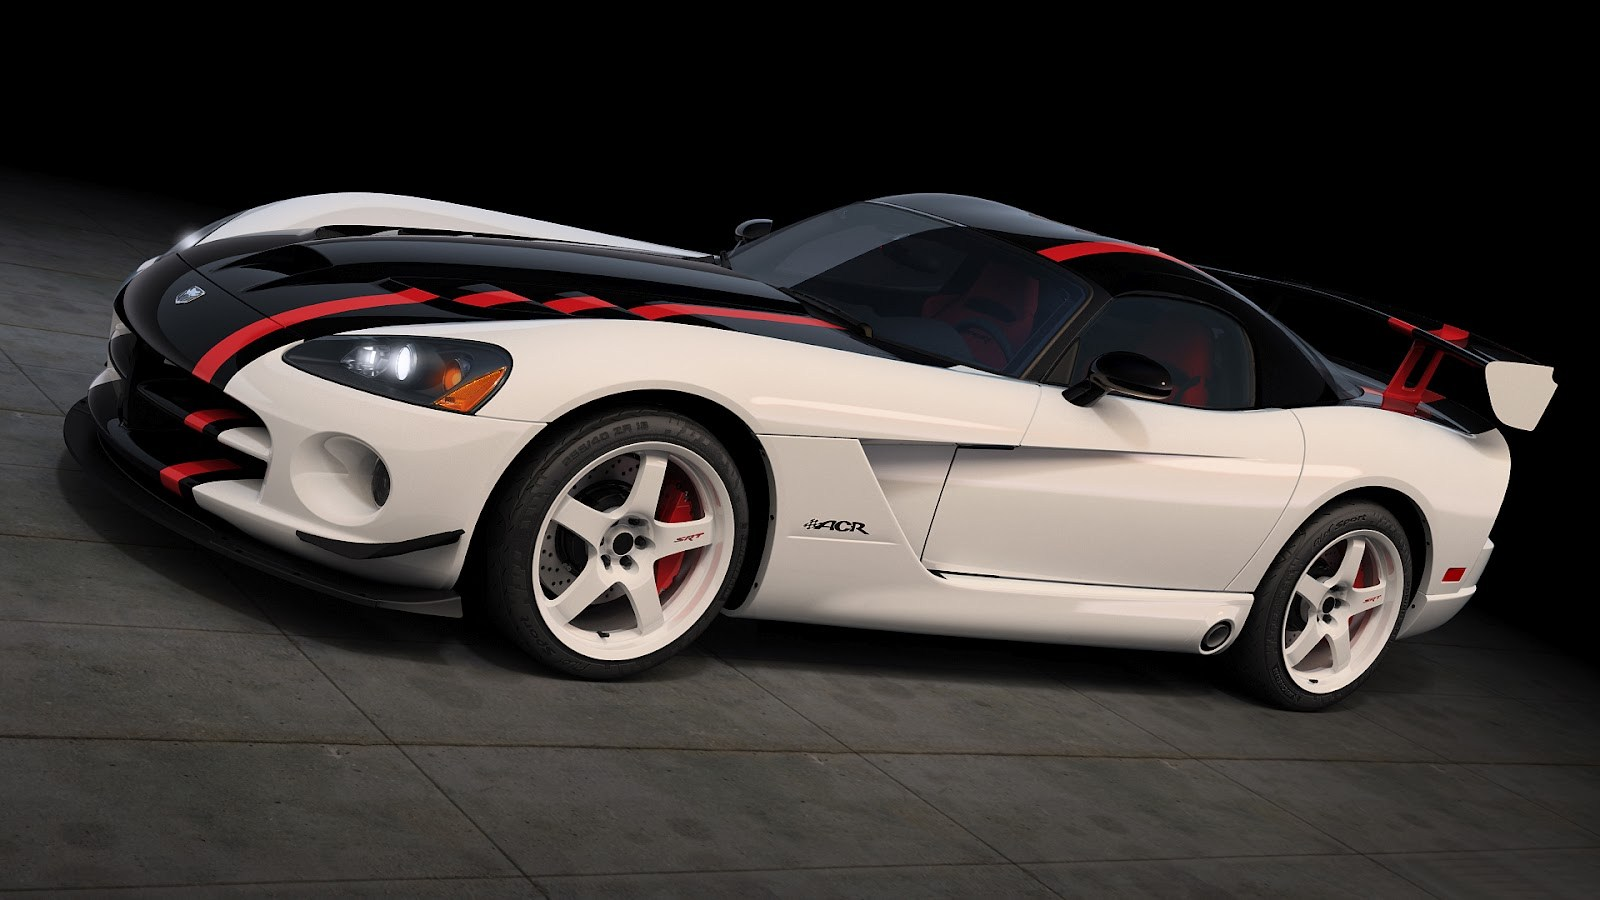 2015 srt viper acr 1024 x 768 wallpaper new thing in automotive. Black Bedroom Furniture Sets. Home Design Ideas